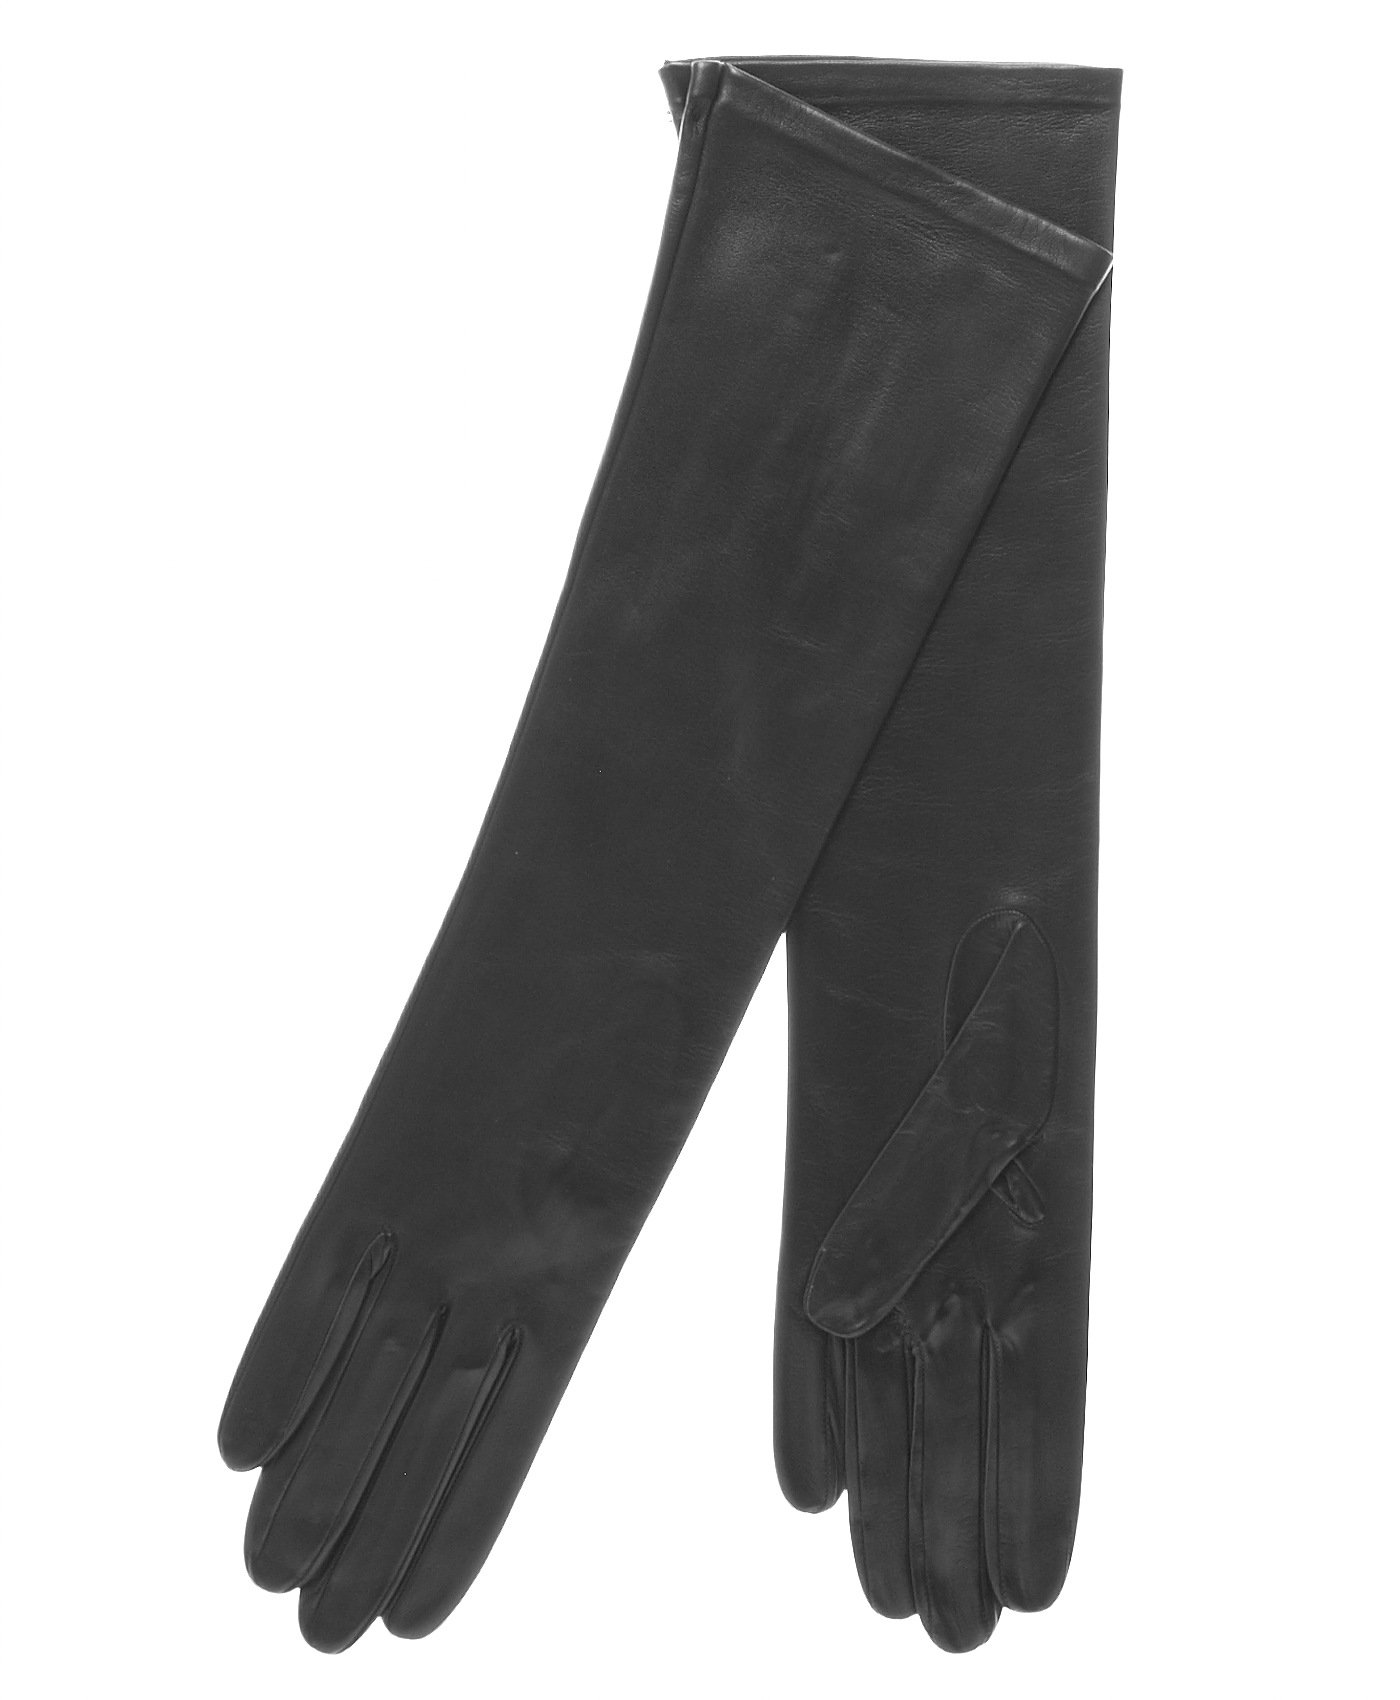 Fratelli Orsini Women's Italian ''8 Button Length'' Unlined Leather Gloves Size 7 Color Black